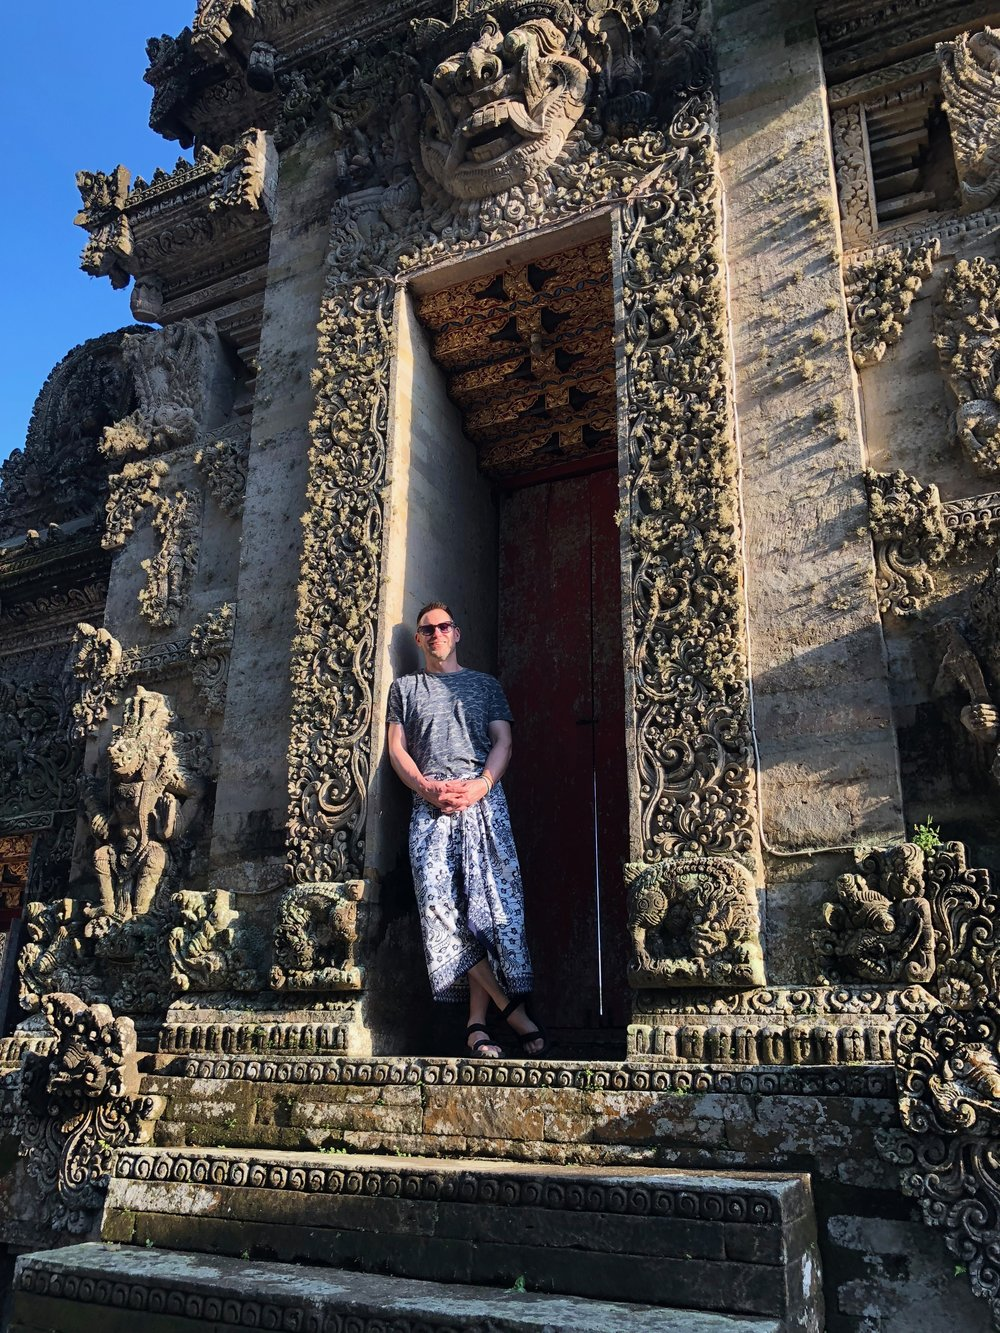 You have to wear a sarong like Duke when visiting a temple on Bali